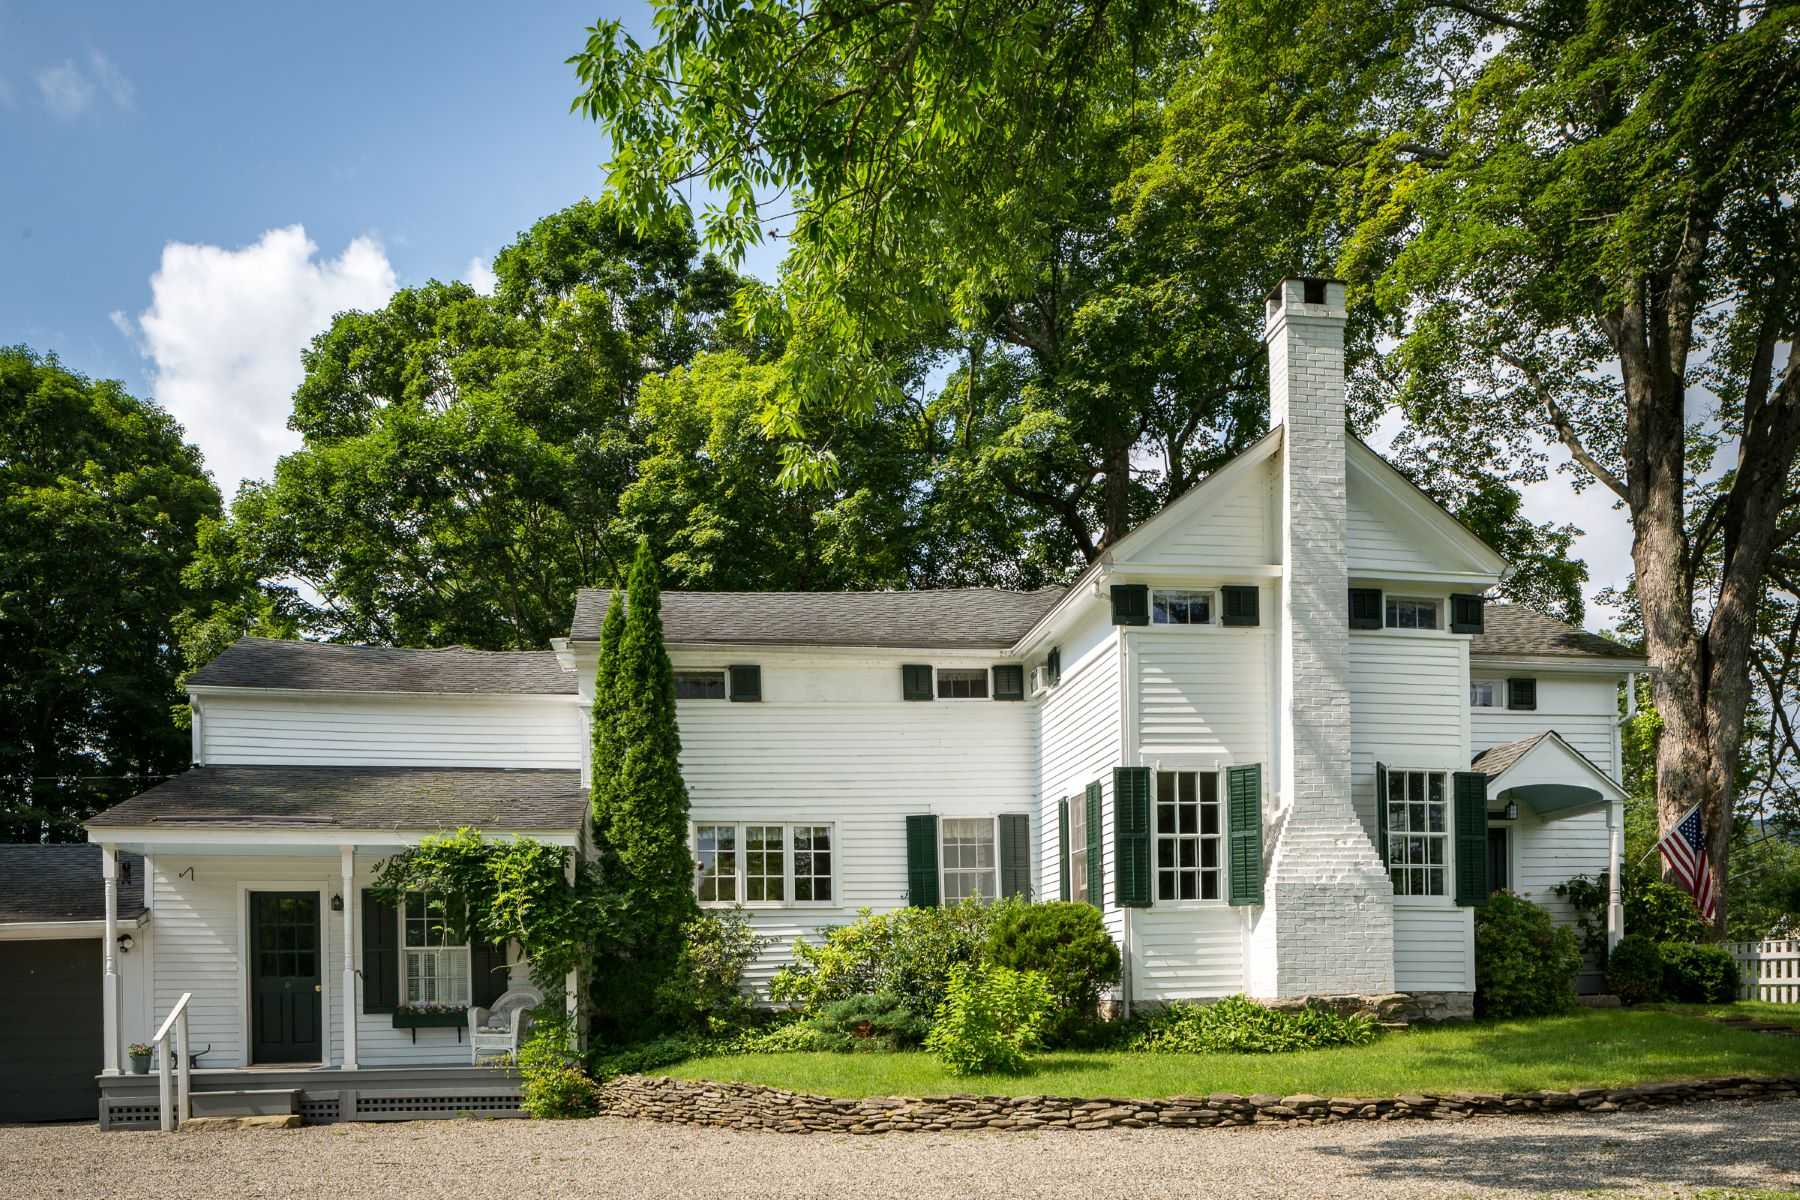 Single Family Home for Sale at A quintessential New England Colonial 120 North Main Street, Kent, Connecticut, 06757 United States